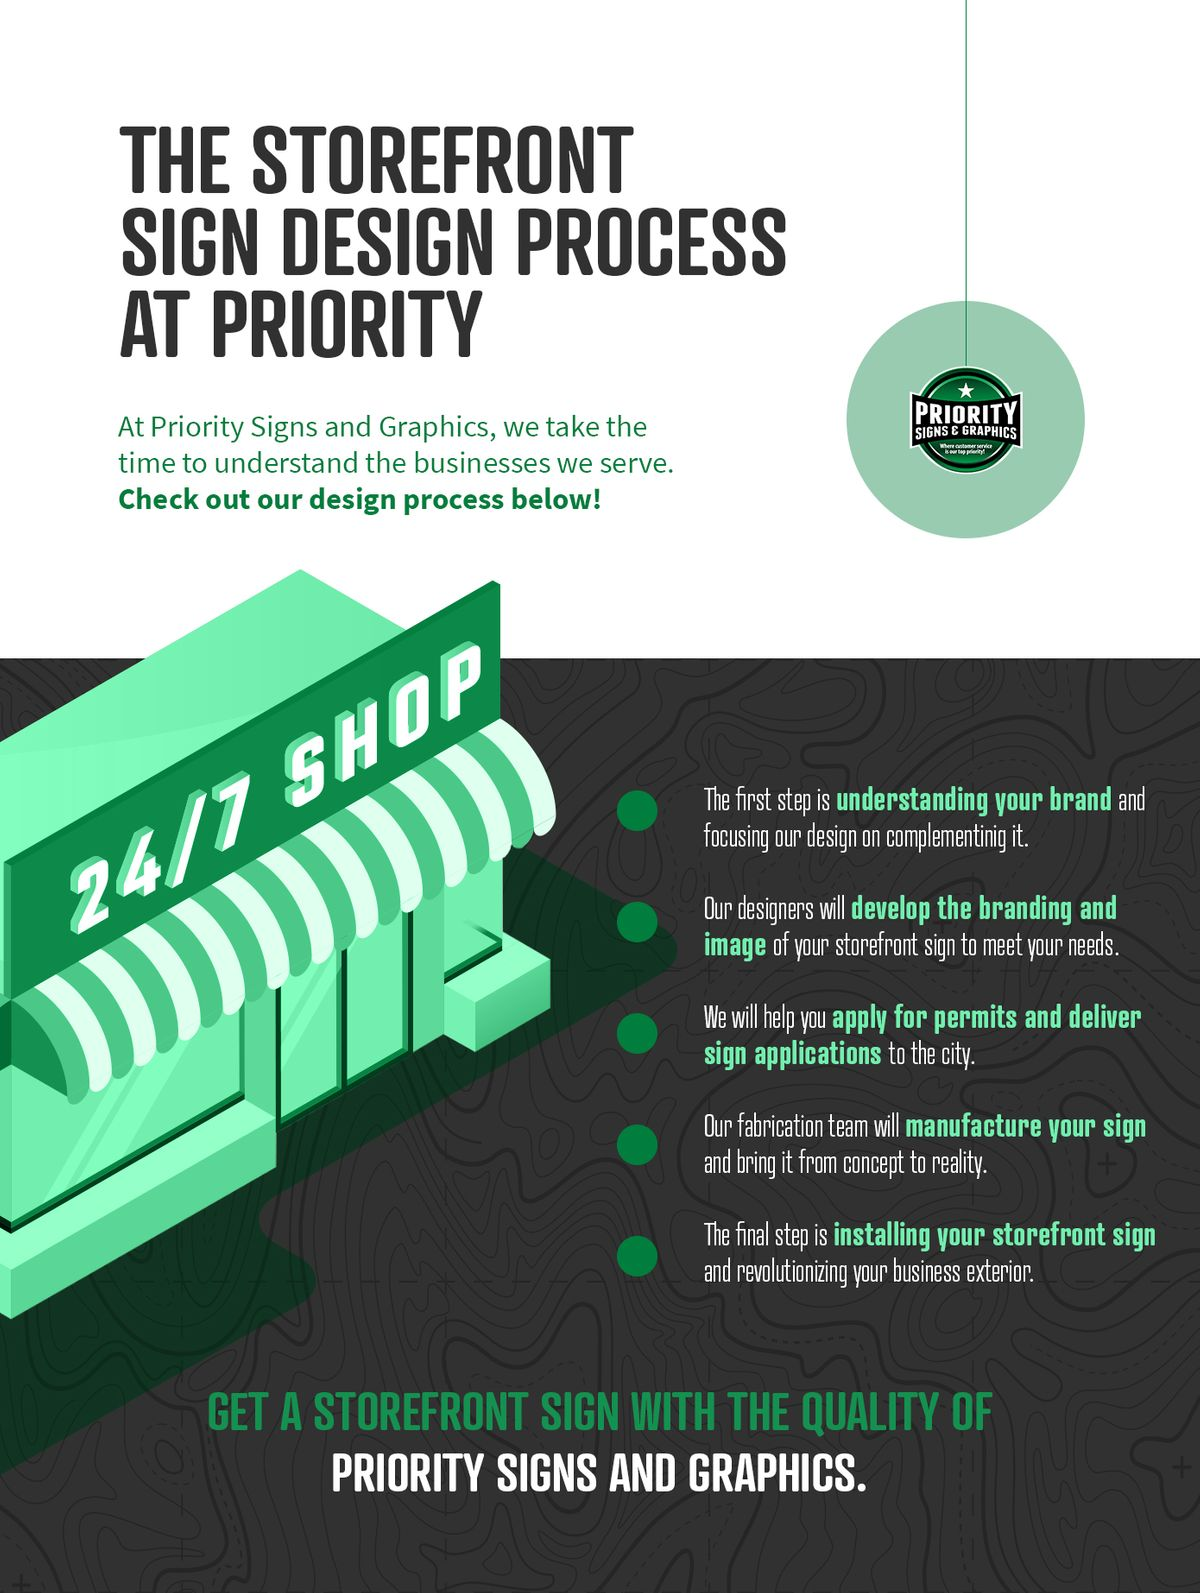 The Storefront Sign Design Process at Priority.jpg